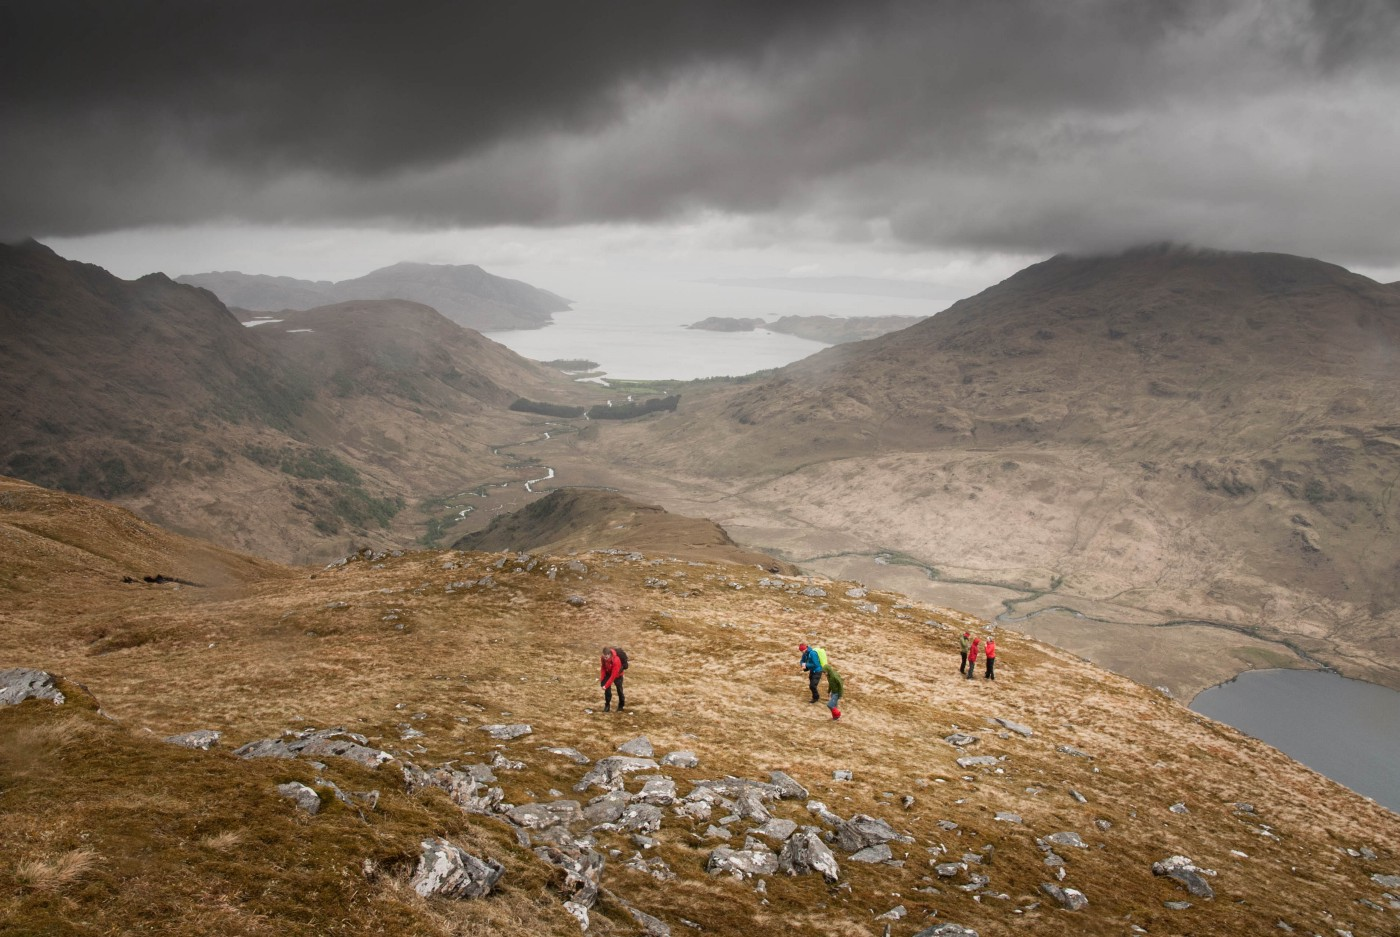 Aerial photo of hikers in a mountain. Photo by Kristóf Vizy on Unsplash.